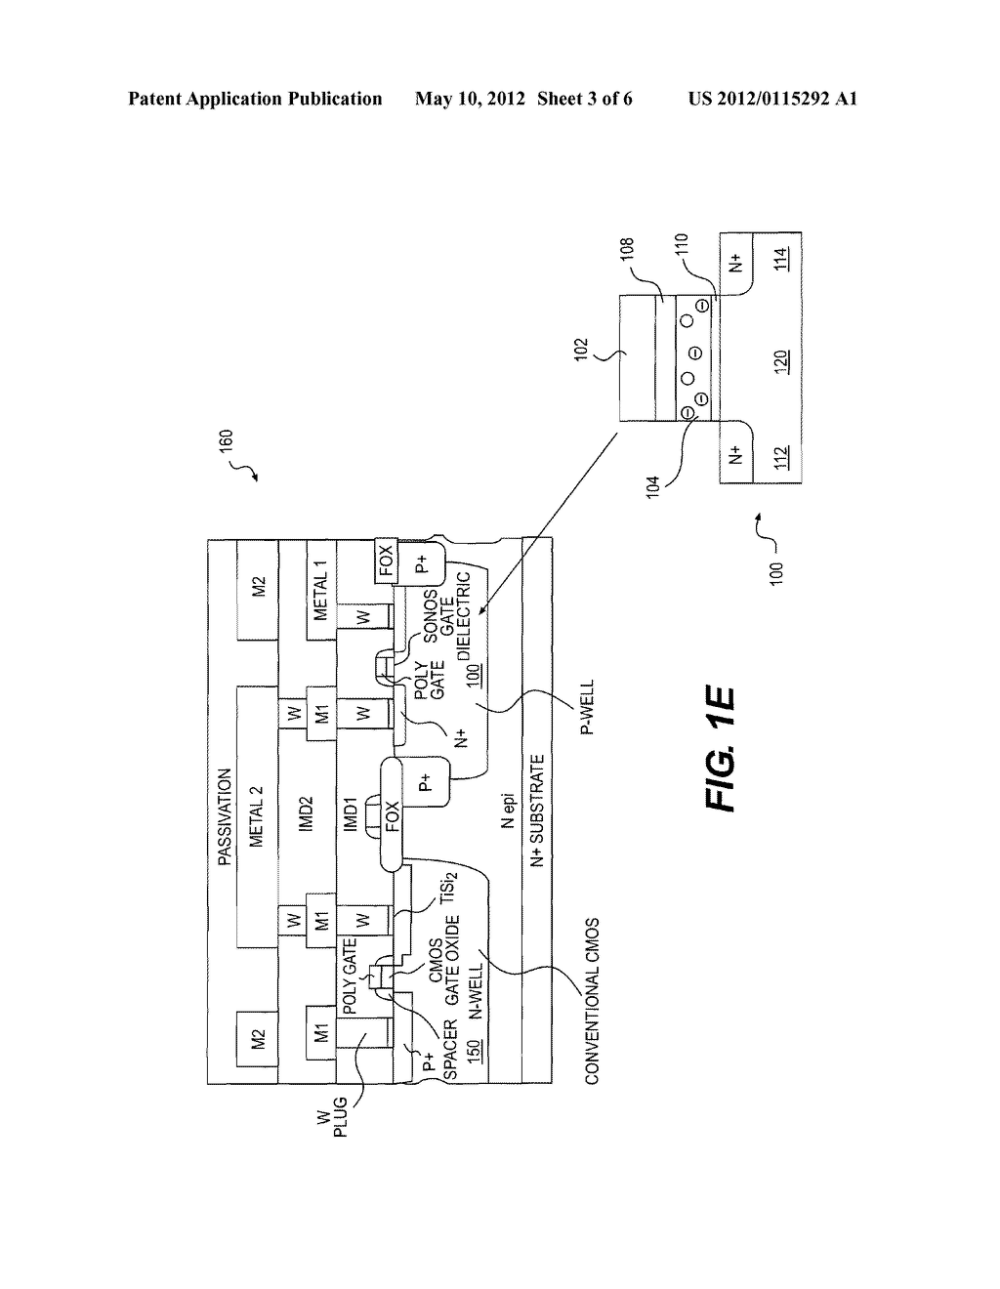 medium resolution of method for integrating sonos non volatile memory into a standard cmos foundry process flow diagram schematic and image 04